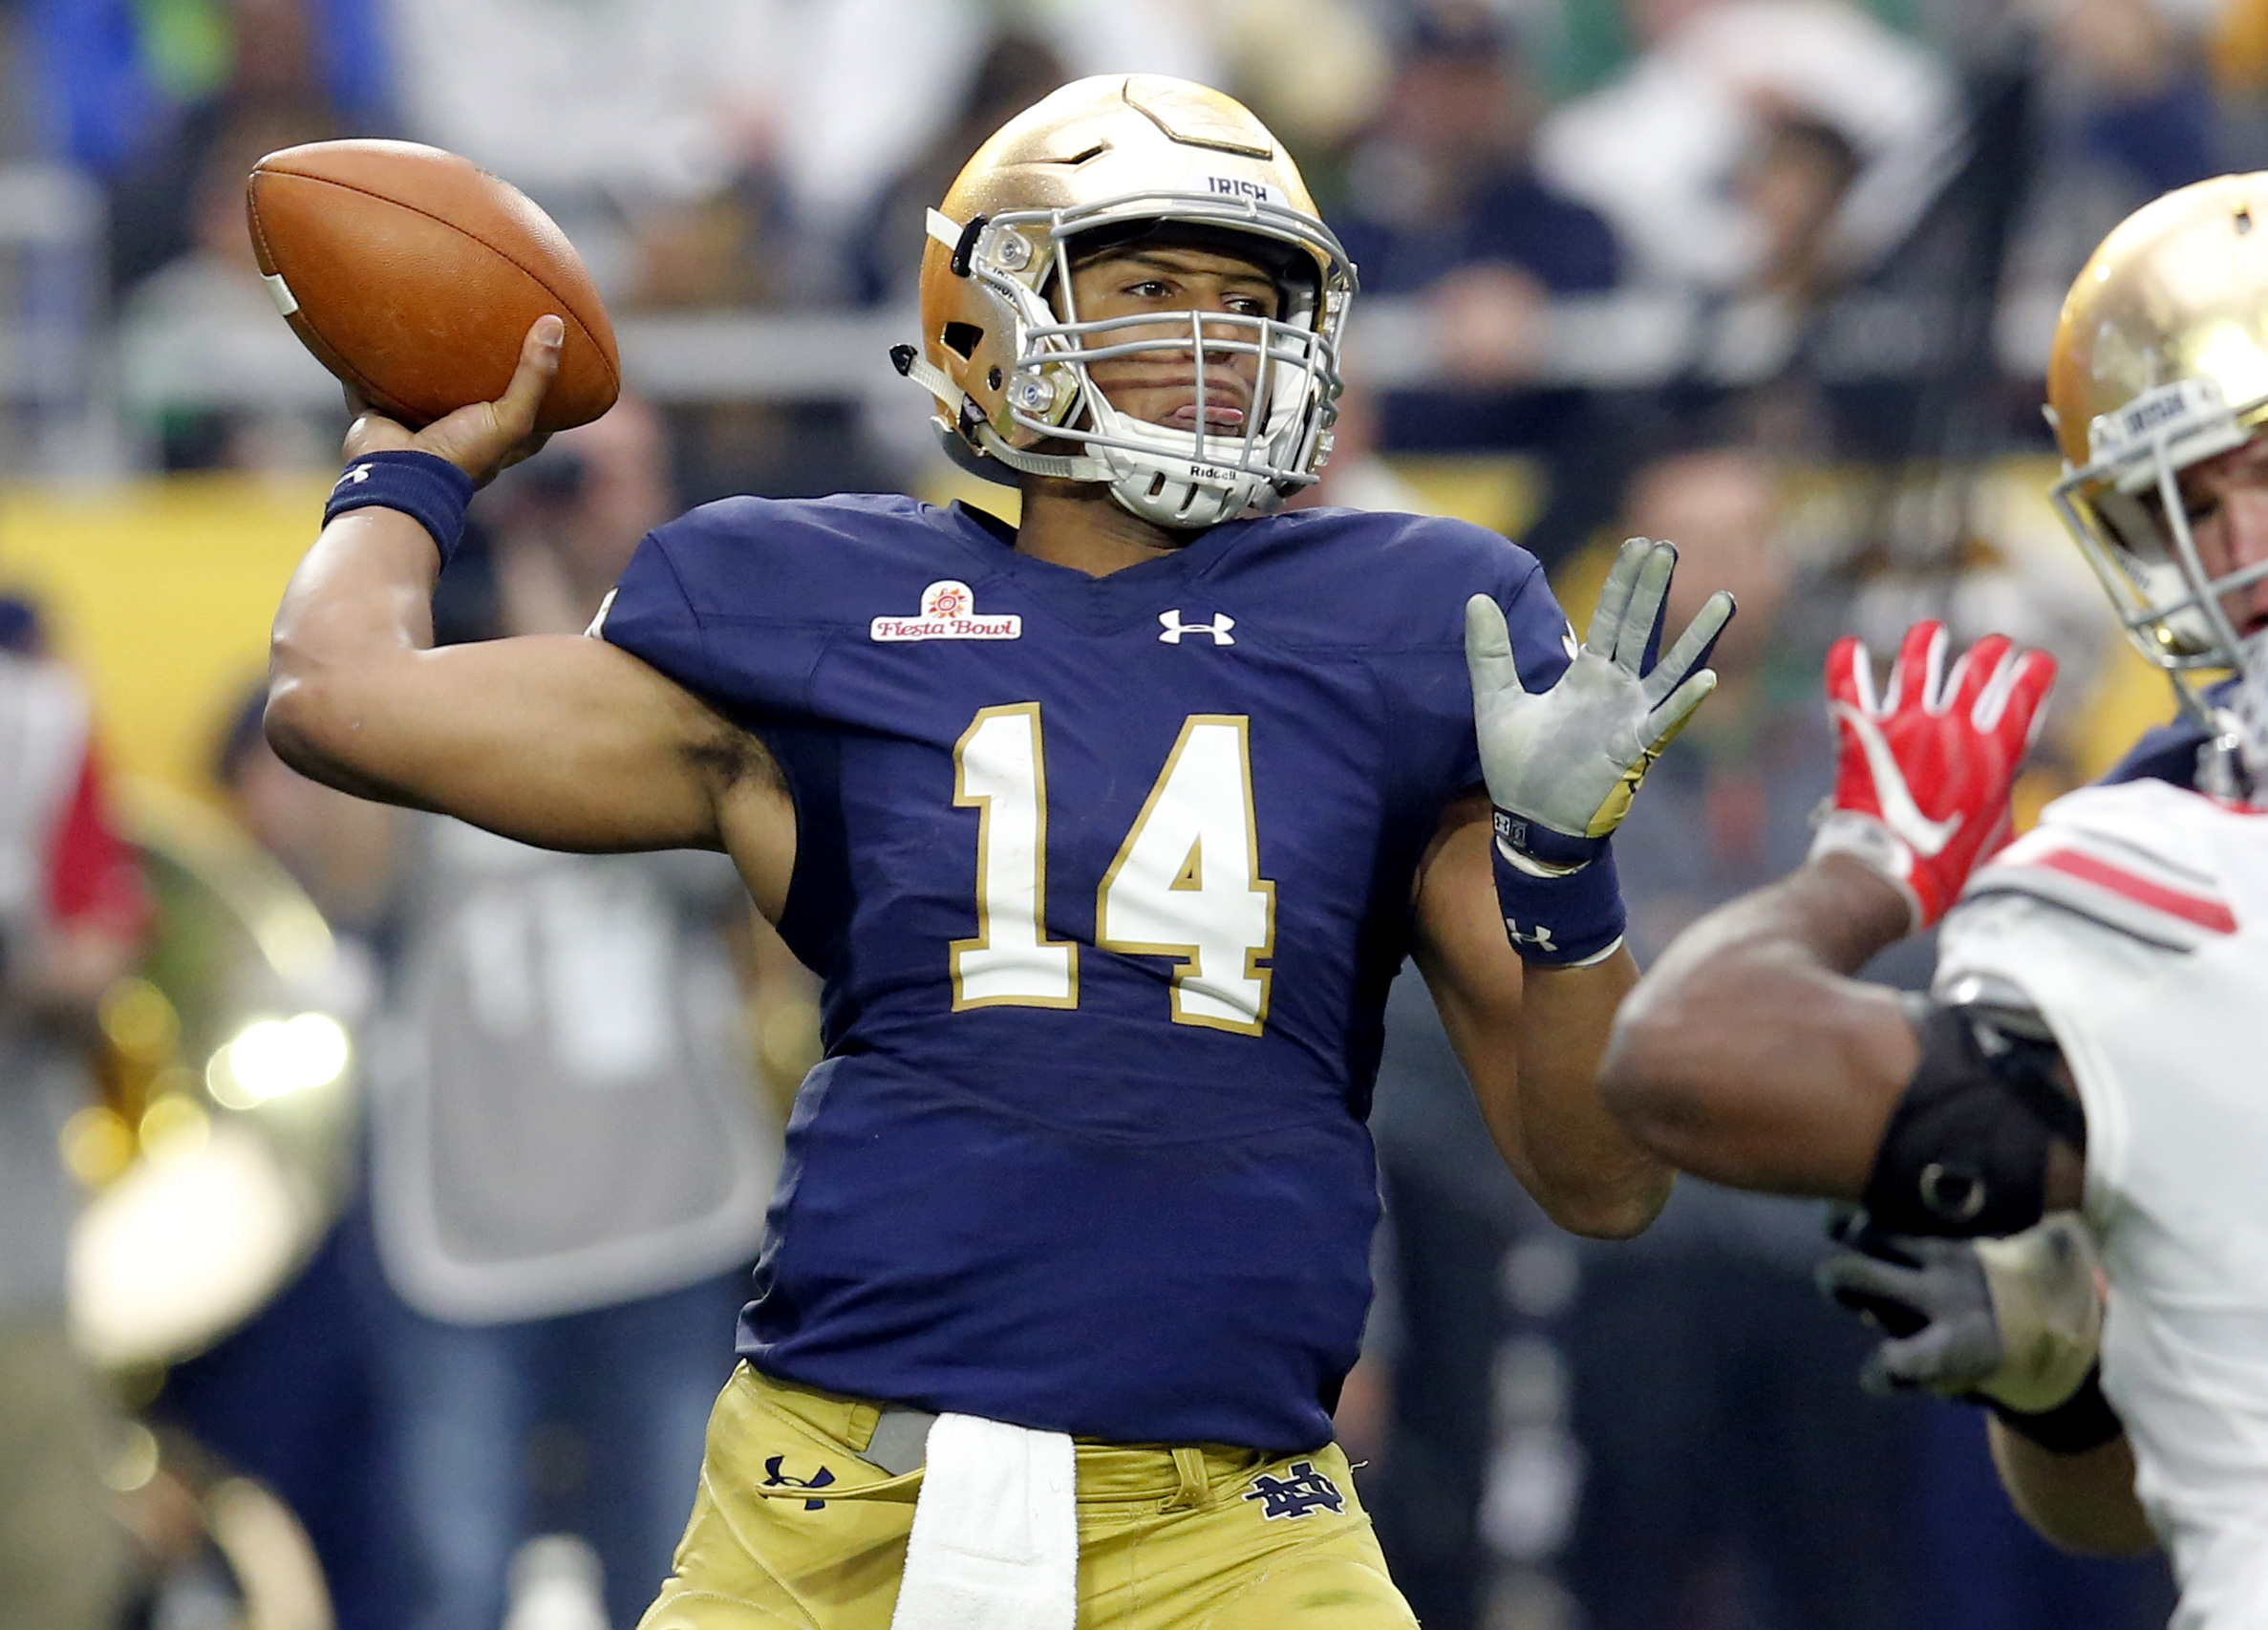 FILE - In this Jan. 1, 2016, file photo, Notre Dame quarterback DeShone Kizer (14) throws against Ohio State during the first half of the Fiesta Bowl NCAA college football game in Glendale, Ariz. Kizer saved Notre Dame's season after Malik Zaire broke his